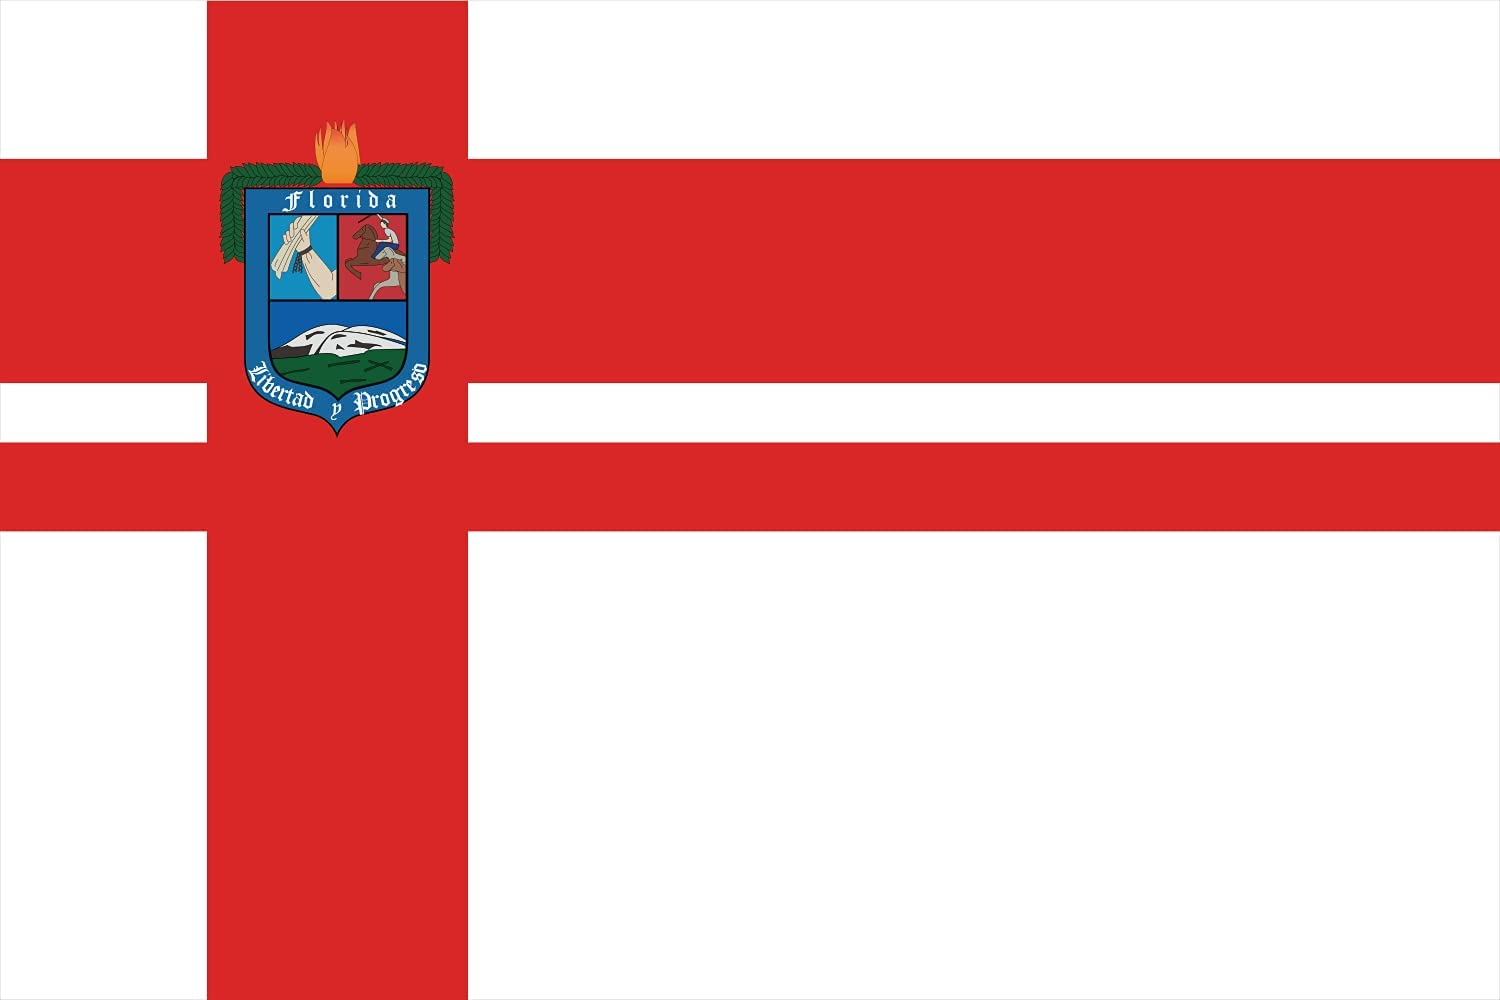 Special price for a limited time magFlags XXXL+ Flag Finally popular brand Florida Landscape 72sqft 6.7m²